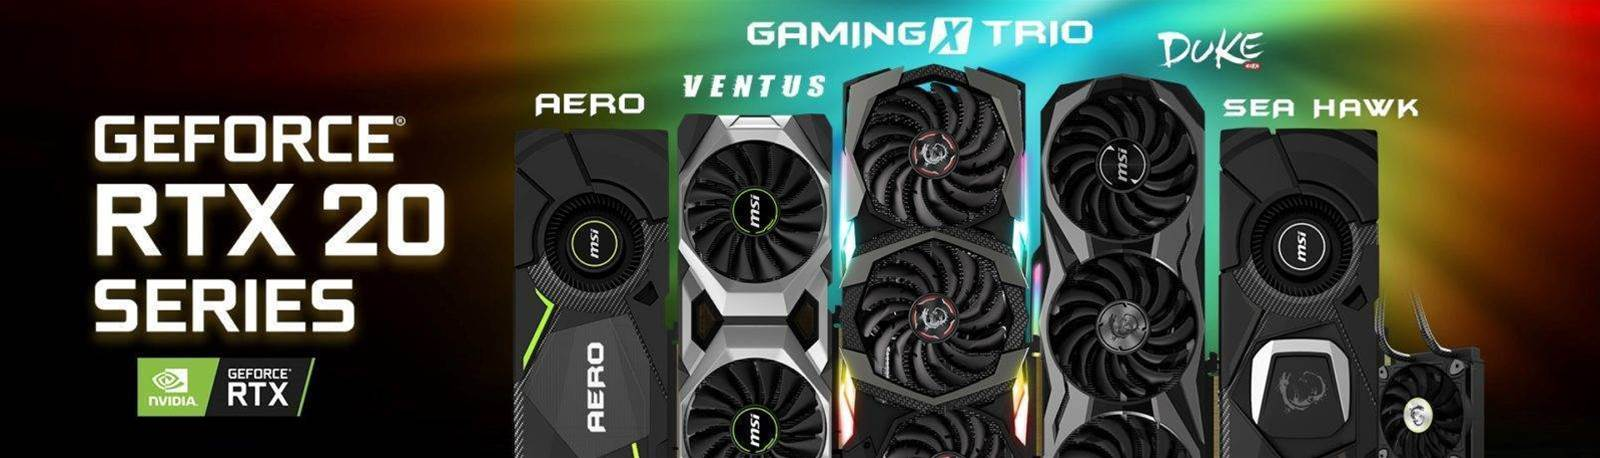 MSI spoils Nvidia's big reveal of the RTX 2080